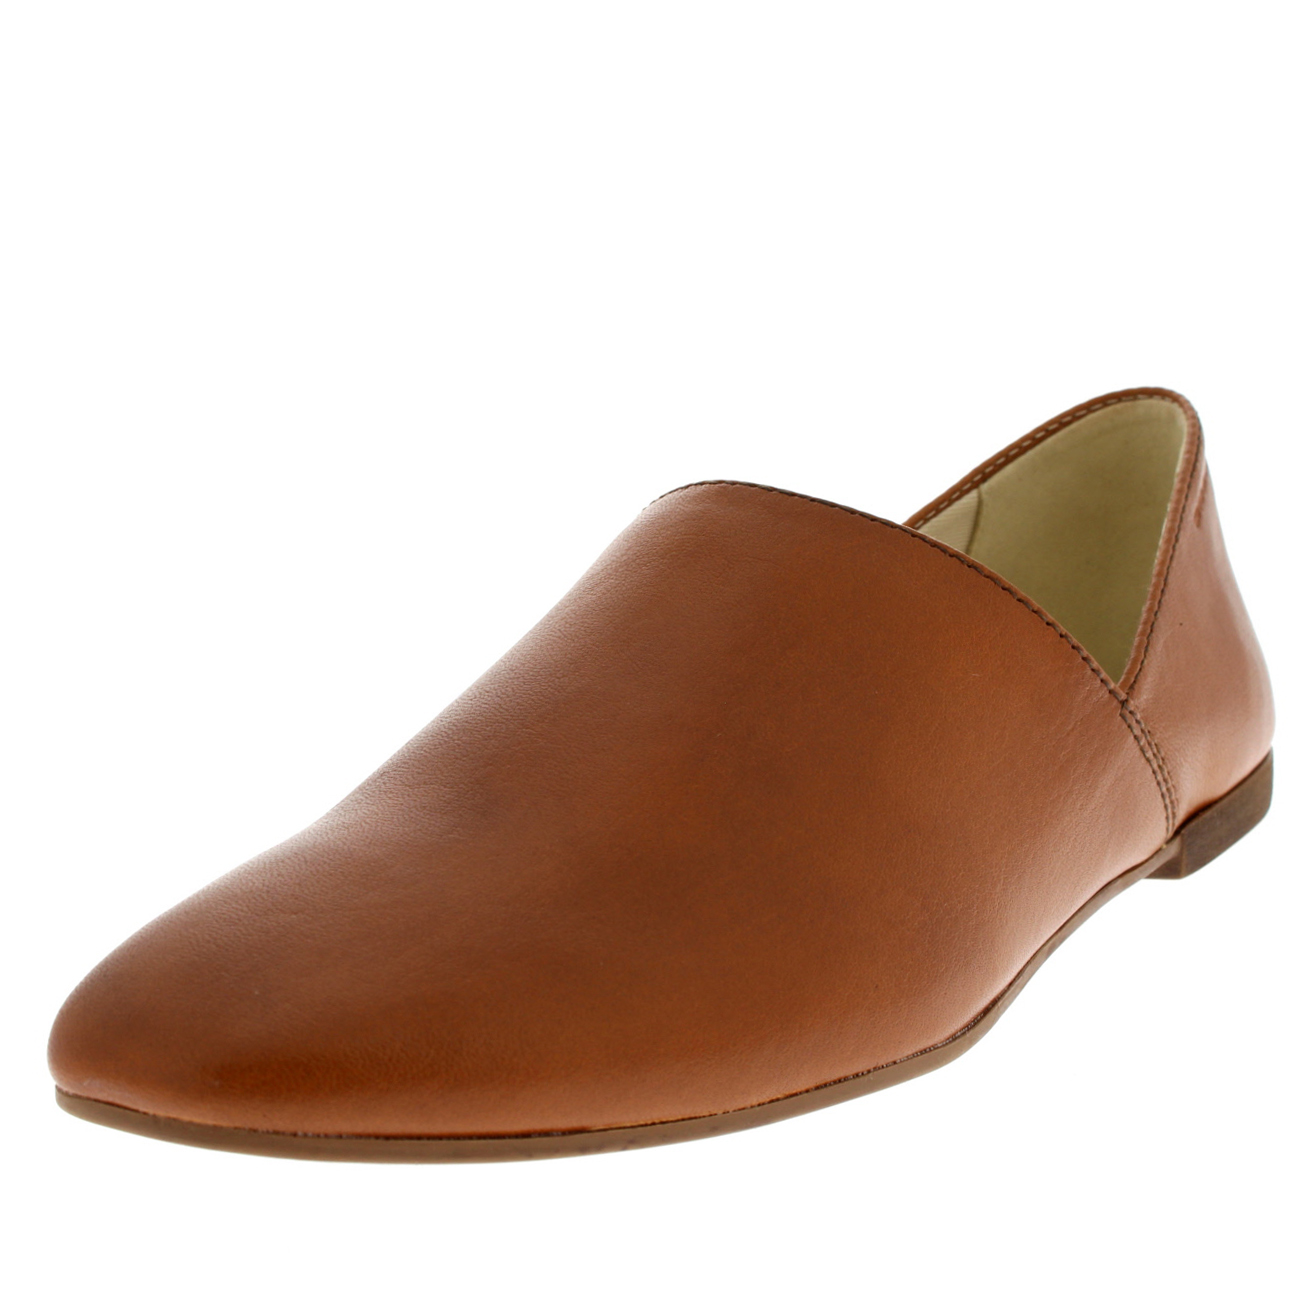 Womens Vagabond Ayden Loafers Leather Smart Office Slip On Flat Shoes